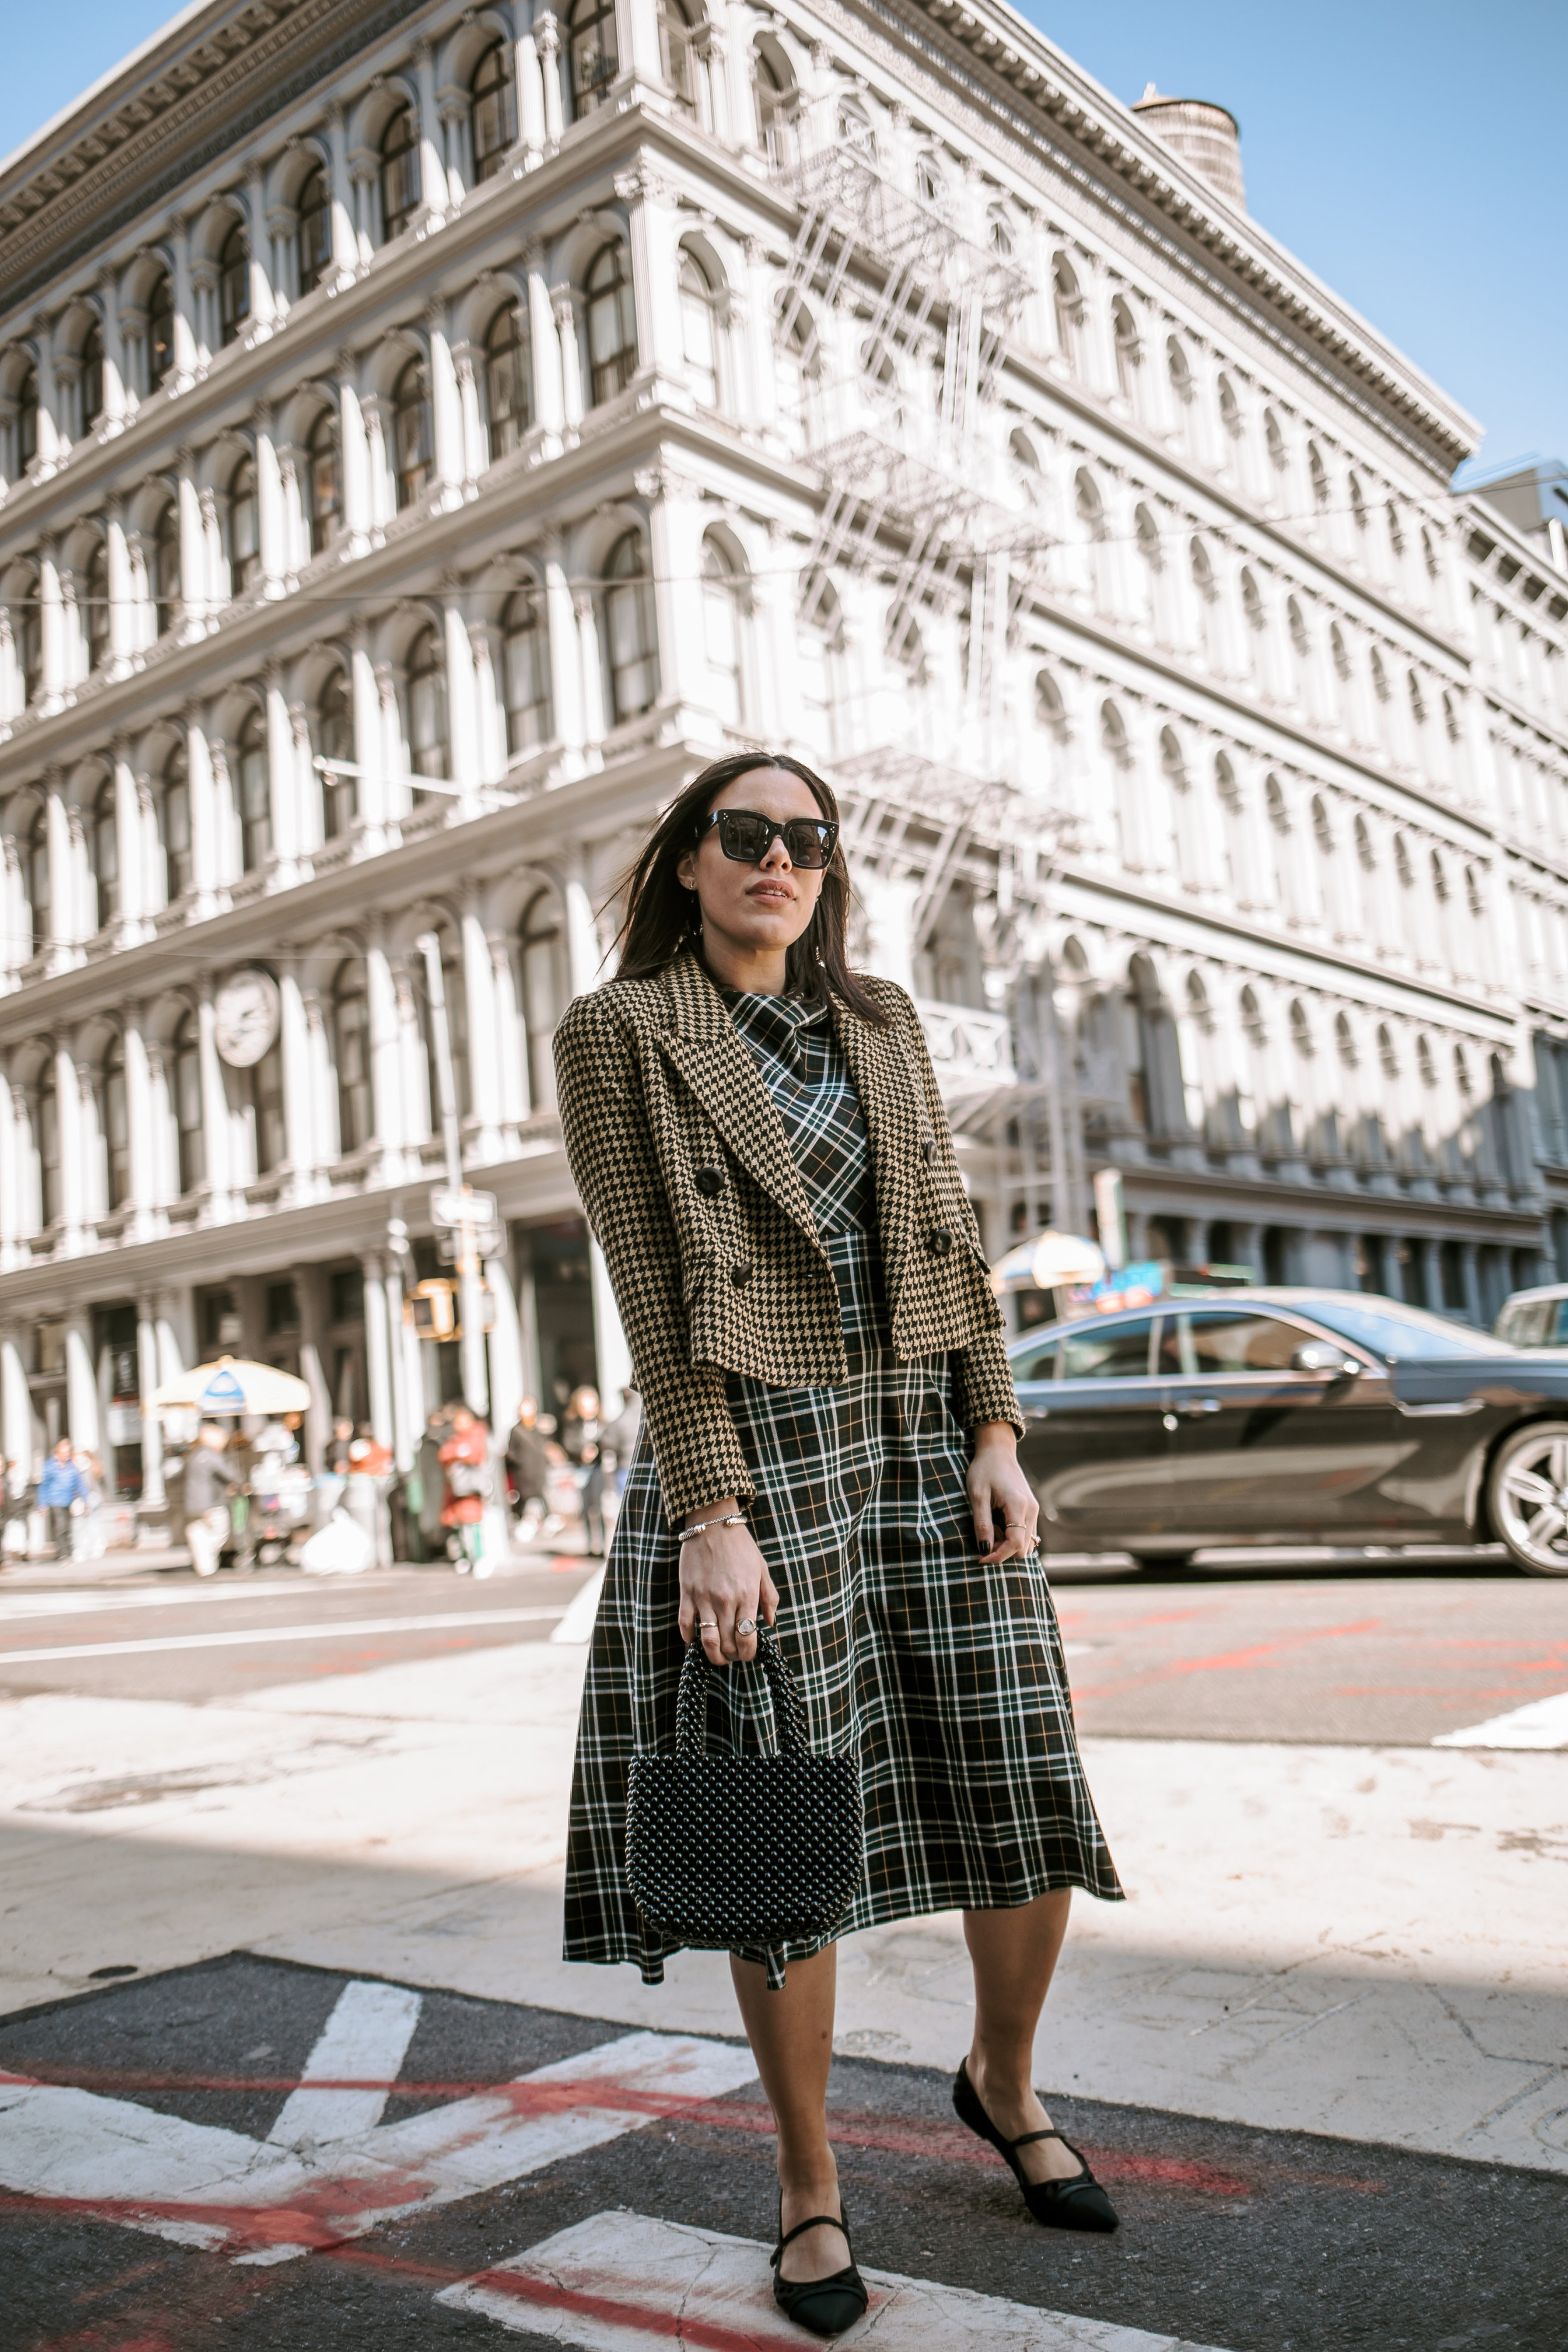 how-to-style-plaid-dress-how-to-mix-and-match-prints-latina-new-york-city-fashion-blogger-style-operator-spring-fashion.jpg